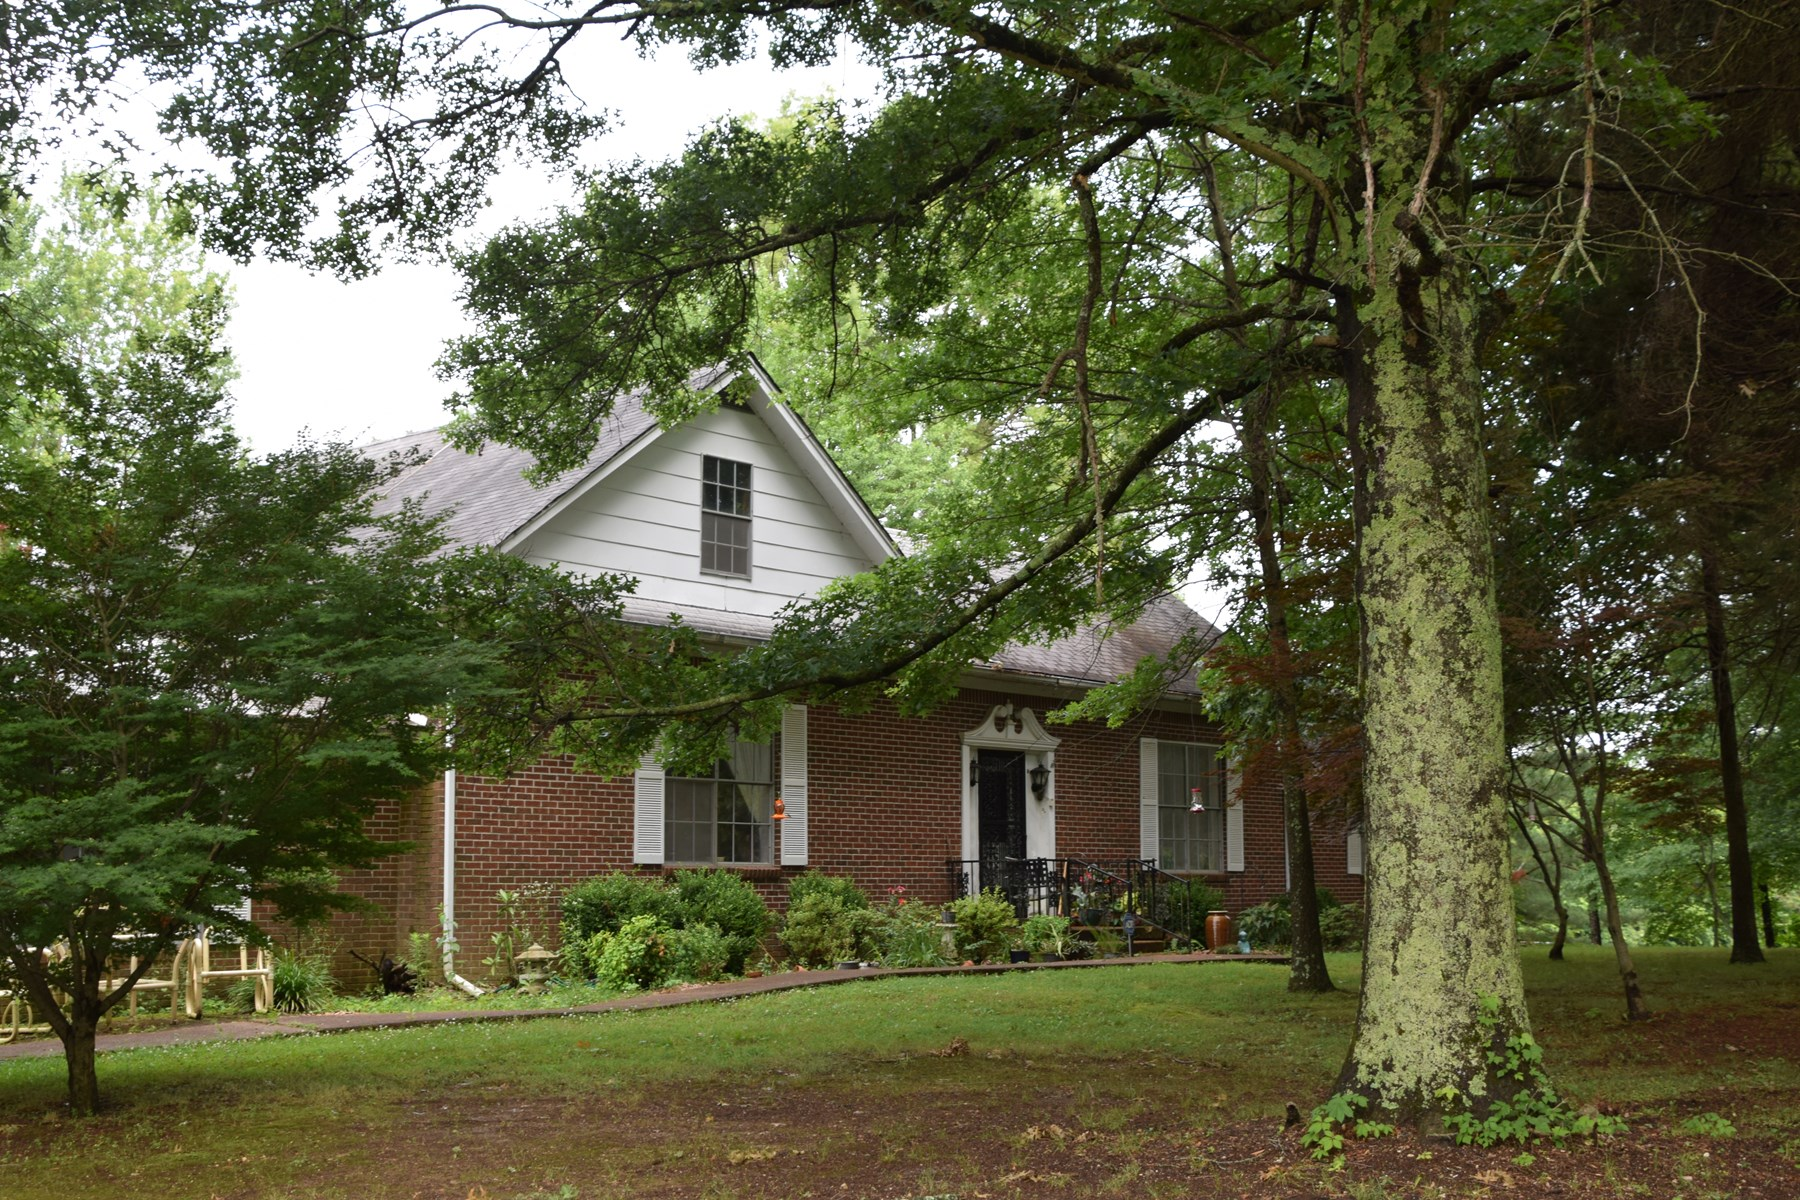 Alamo Crockett County, TN Historic Remodeled Home W/ Acreage